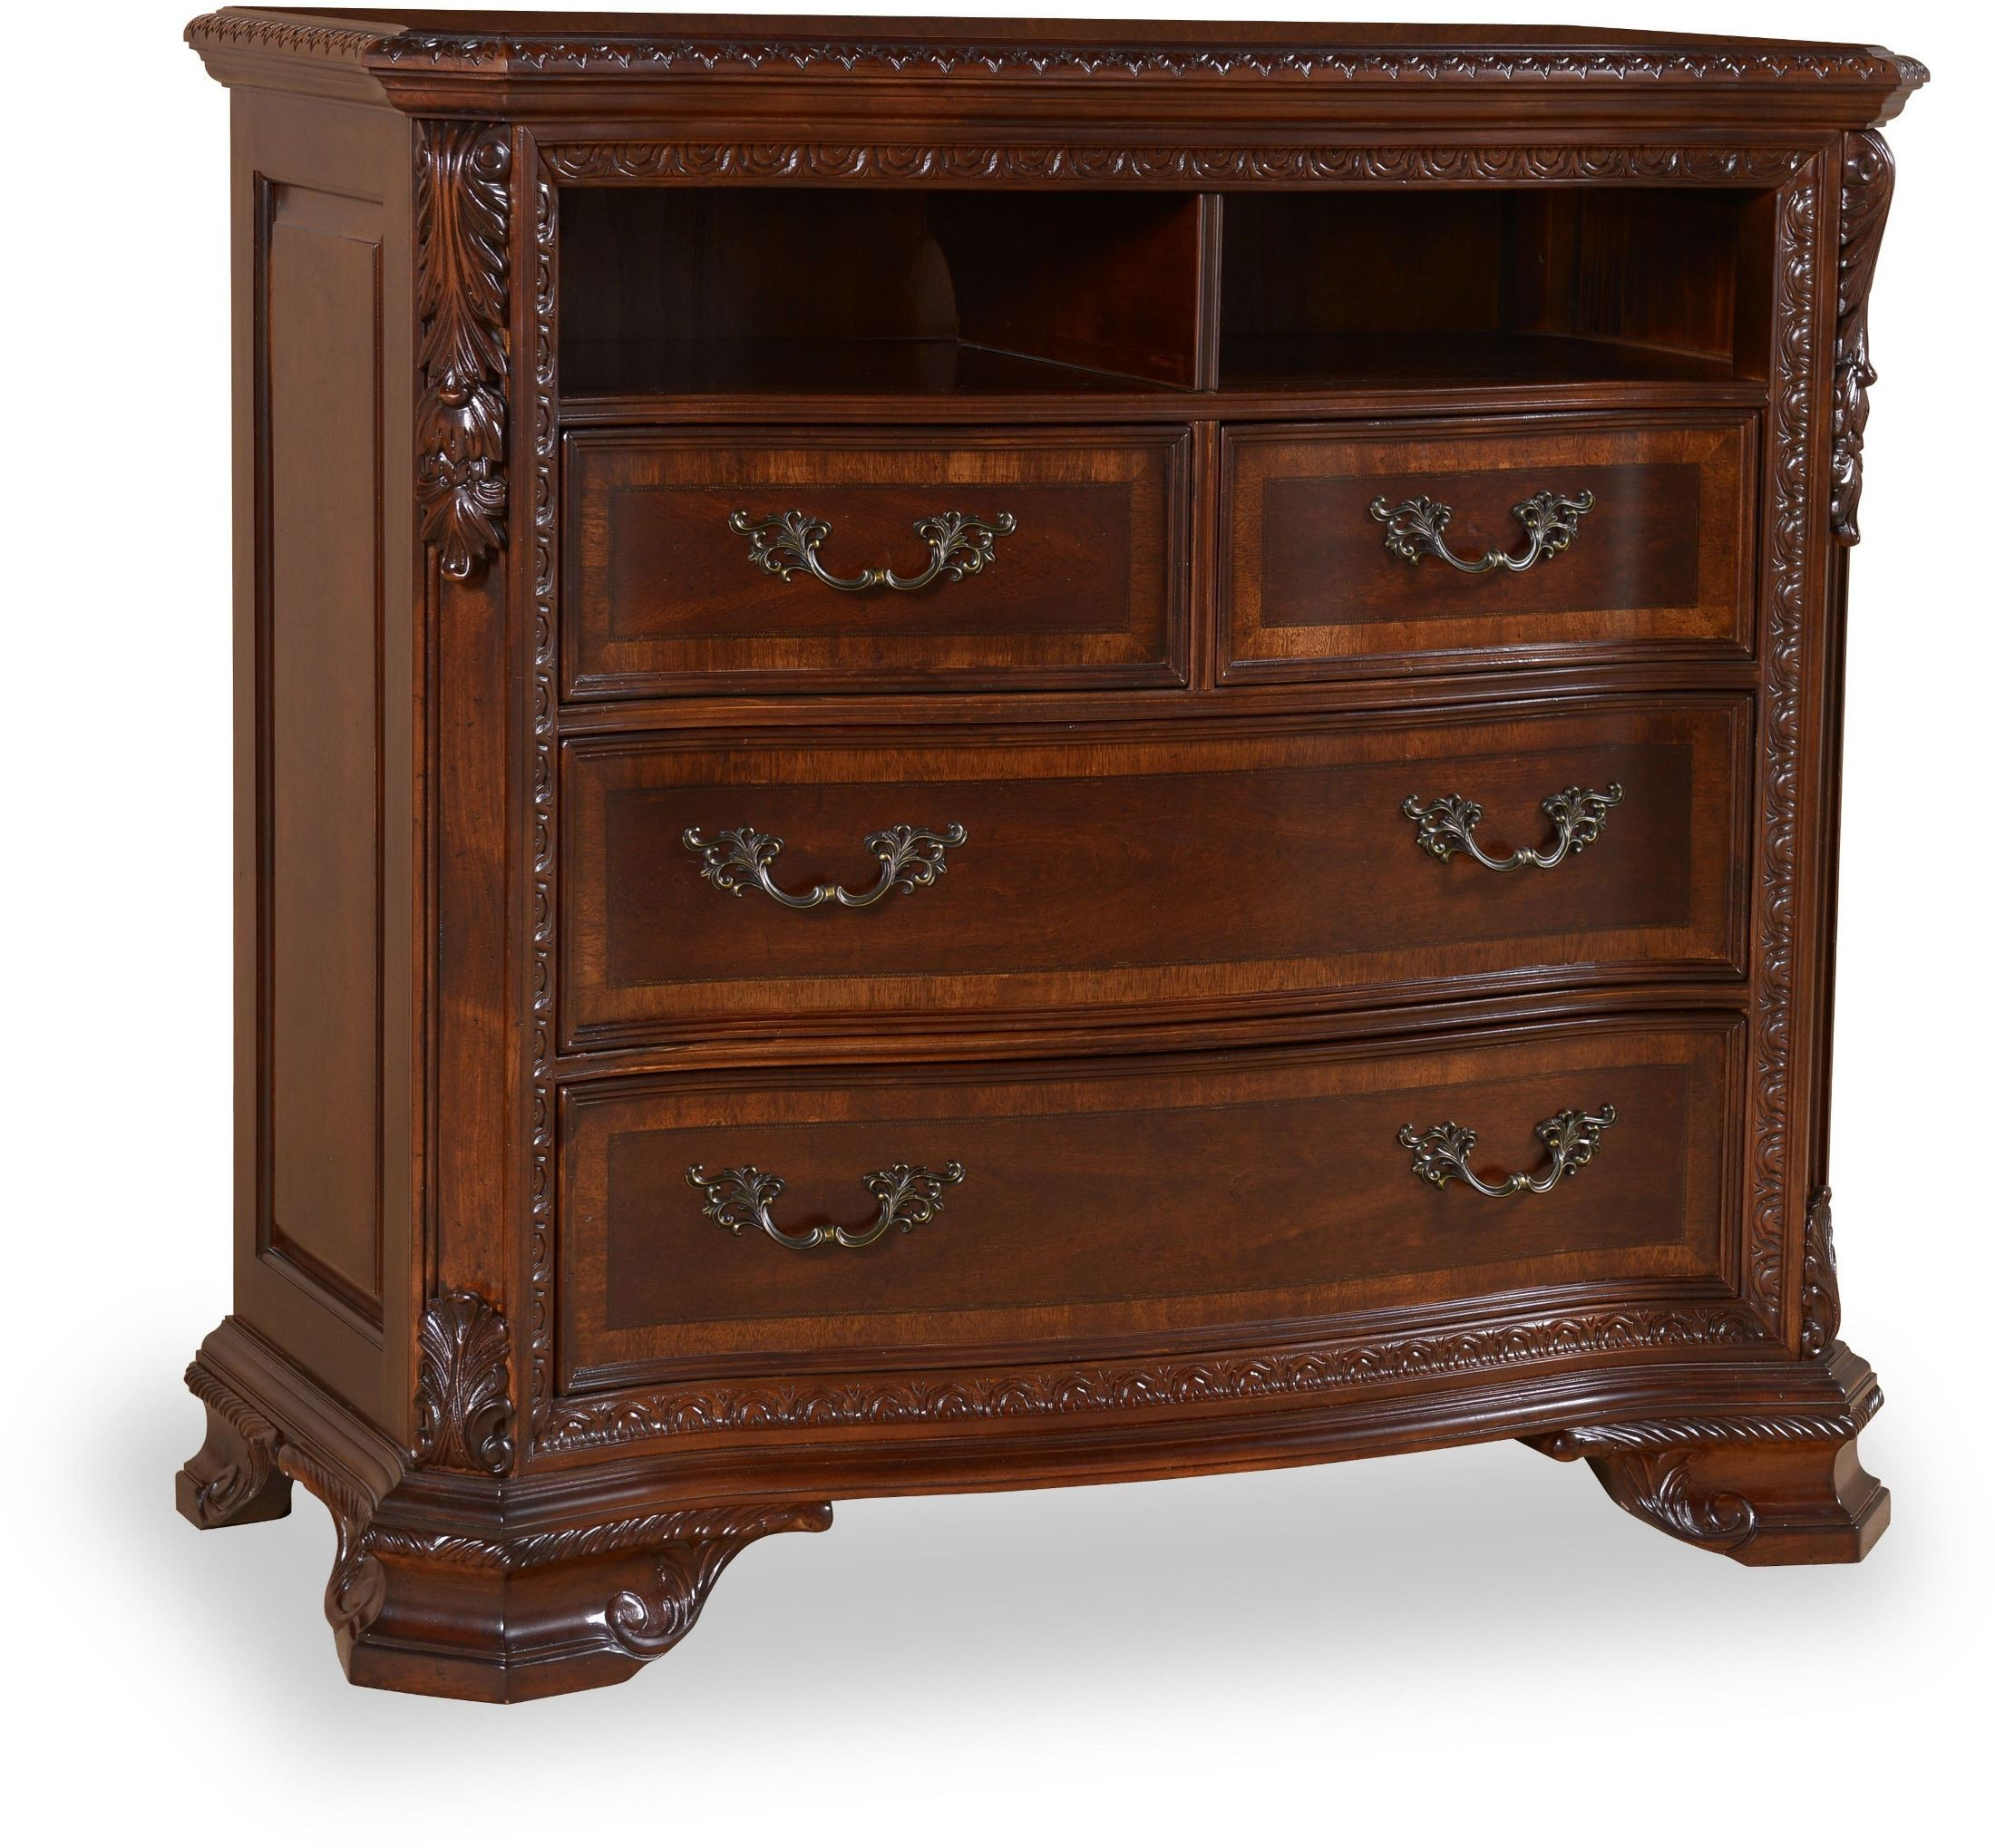 Old World Bedroom Furniture: Old World Estate Bedroom Set From ART (143155)